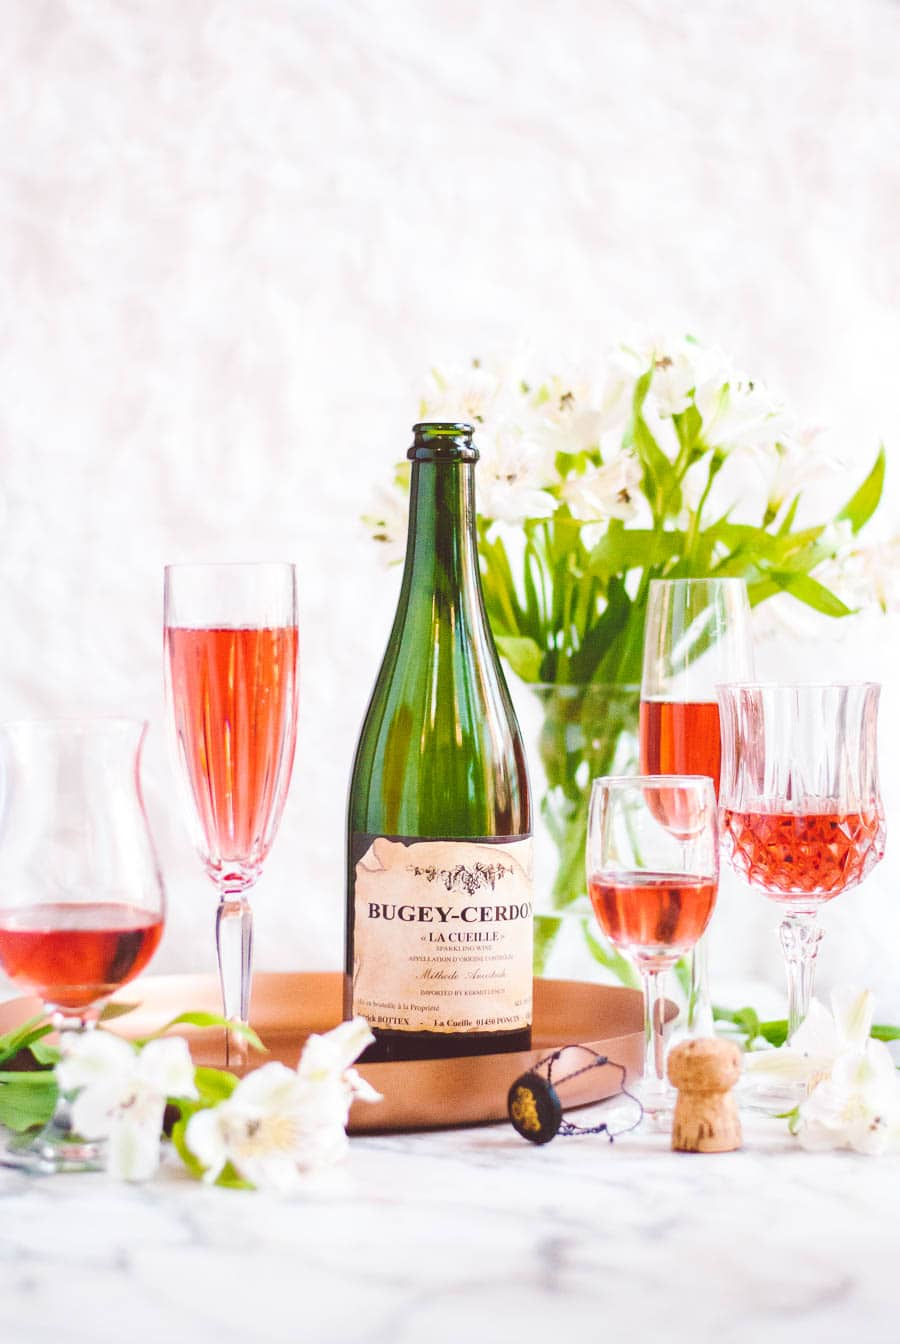 bottle of Bugey-Cerdon La Cueille French sparkling wine with filled wine glasses and flowers